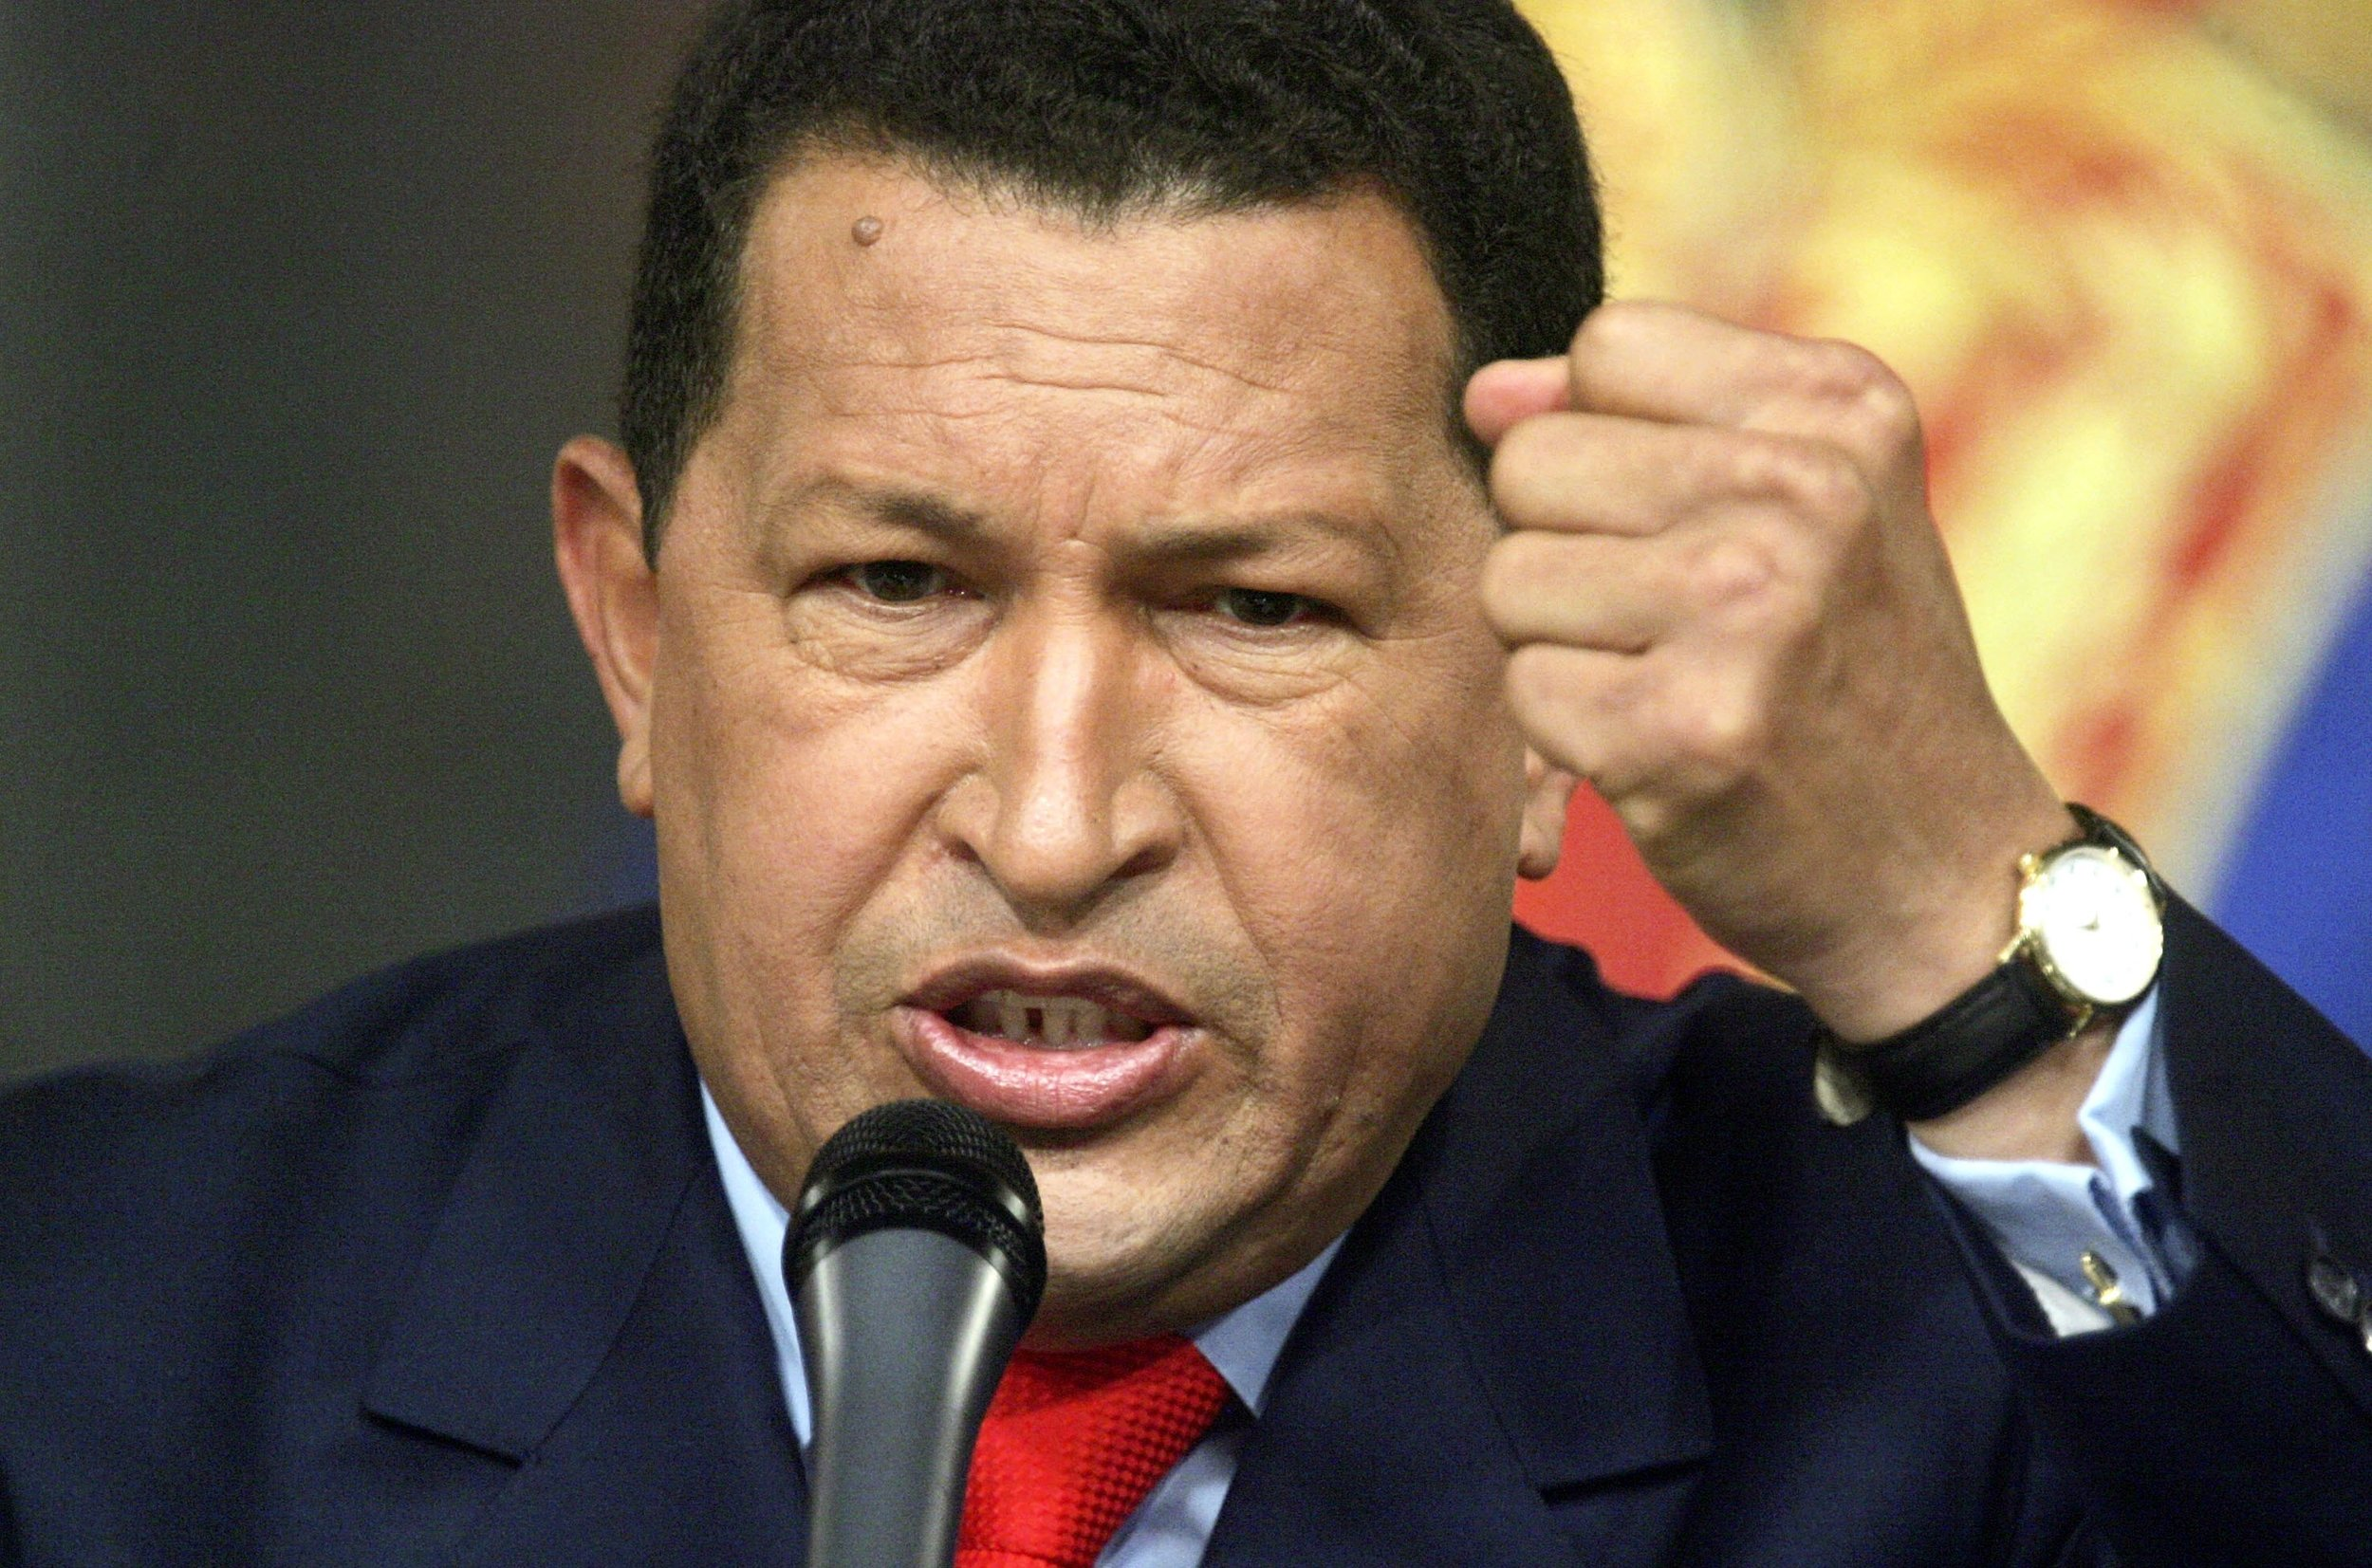 CARACAS, VENEZUELA - DECEMBER 05: Venezuelan President Hugo Chavez speaks at a press conference in Miraflores Palace December 5, 2006 in Caracas, Venezuela. Chavez was officially declared the re-elected president by electoral authorities today after defeating challenger Manuel Rosales in the December 3 election. (Photo by Mario Tama/Getty Images)